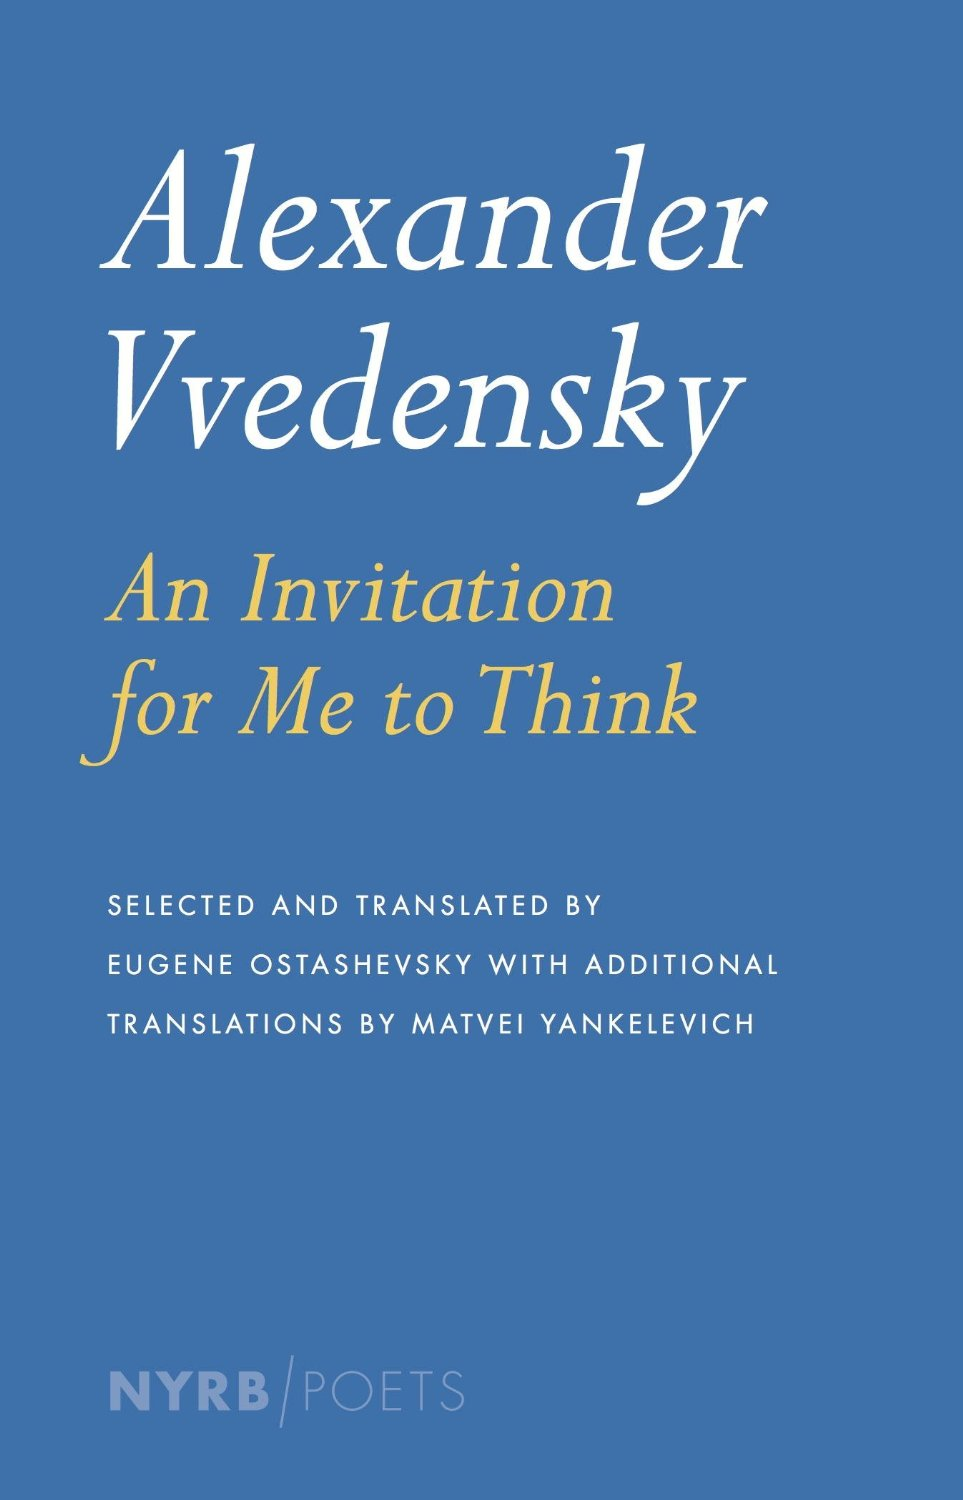 by Alexander Vvedensky, translated from RUSSIAN by Eugene Ostashevsky & Matvei Yankelevich